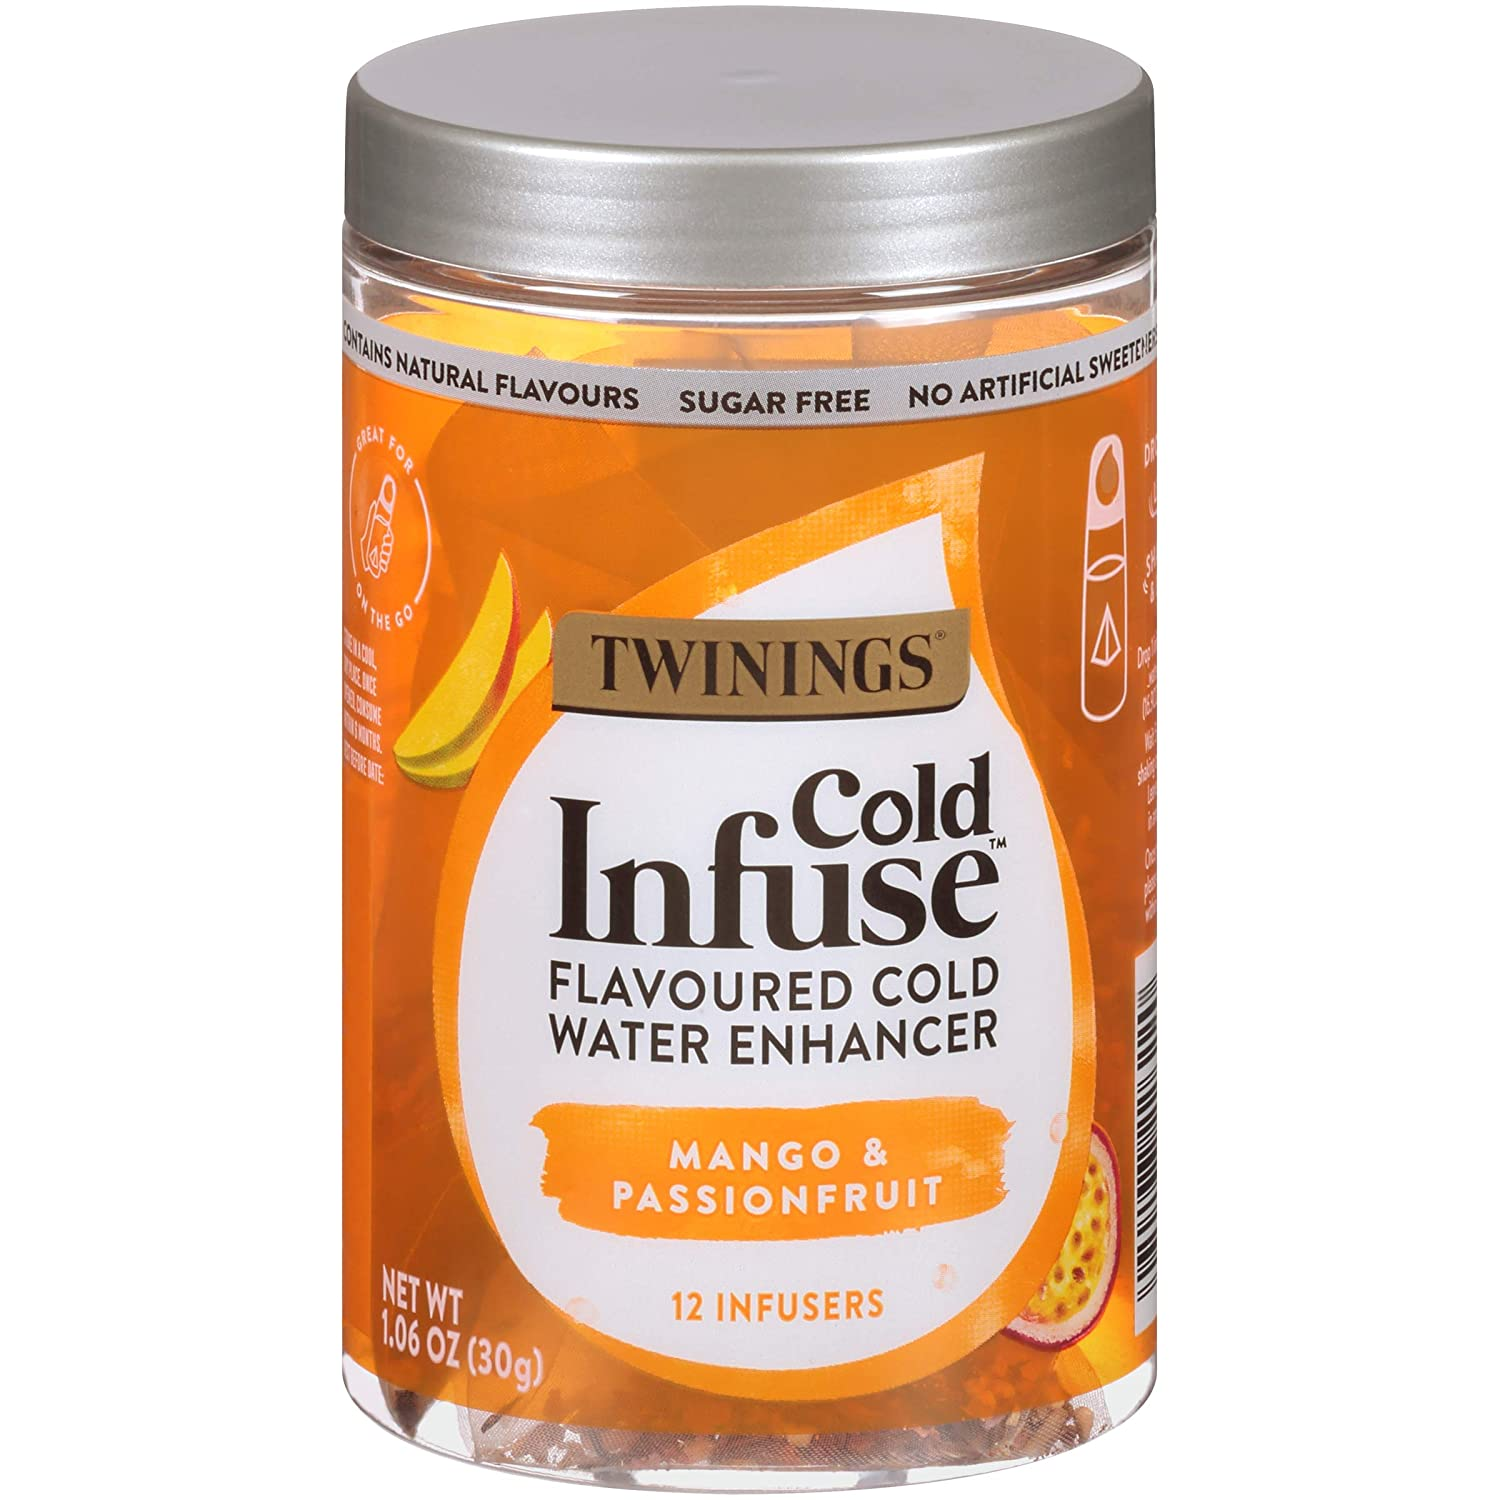 Twinings Cold Infuse Flavored Water Enhancer, Mango & Passionfruit, 12 Infusers (Pack of 6)